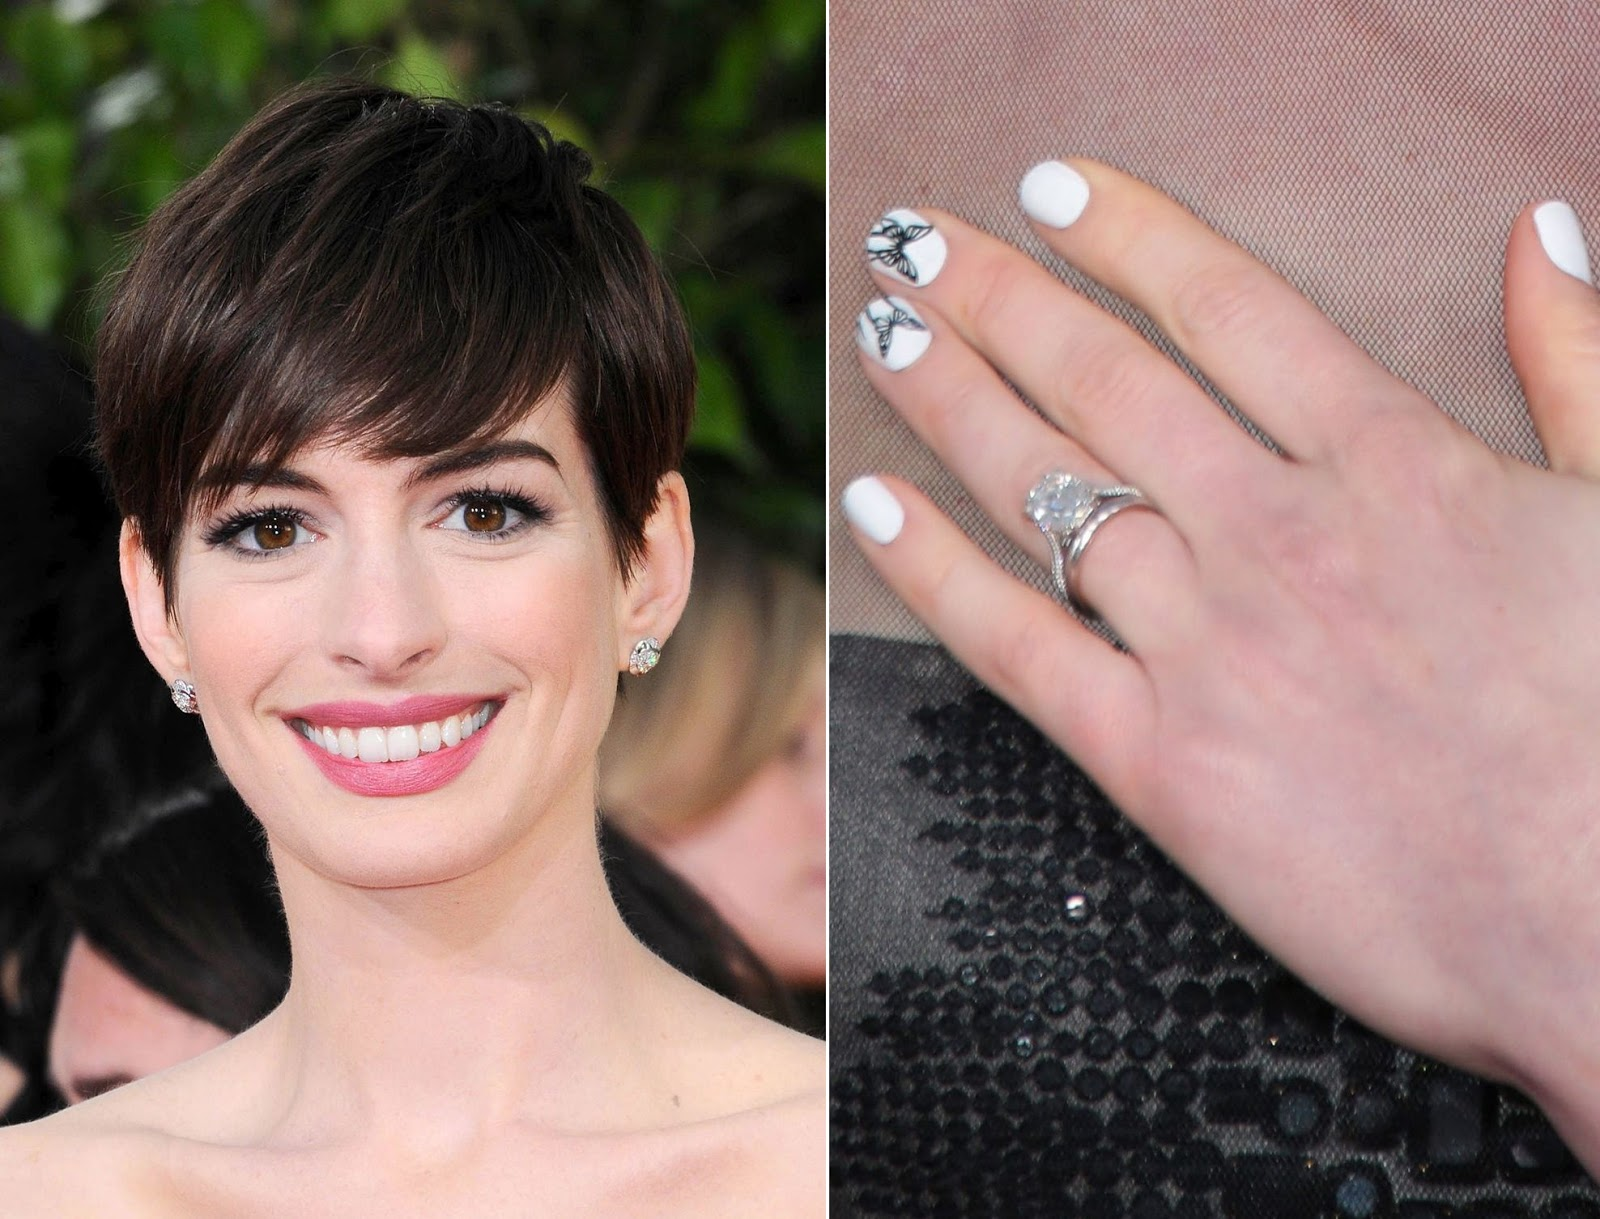 10 Hollywood leading ladies and their engagement rings